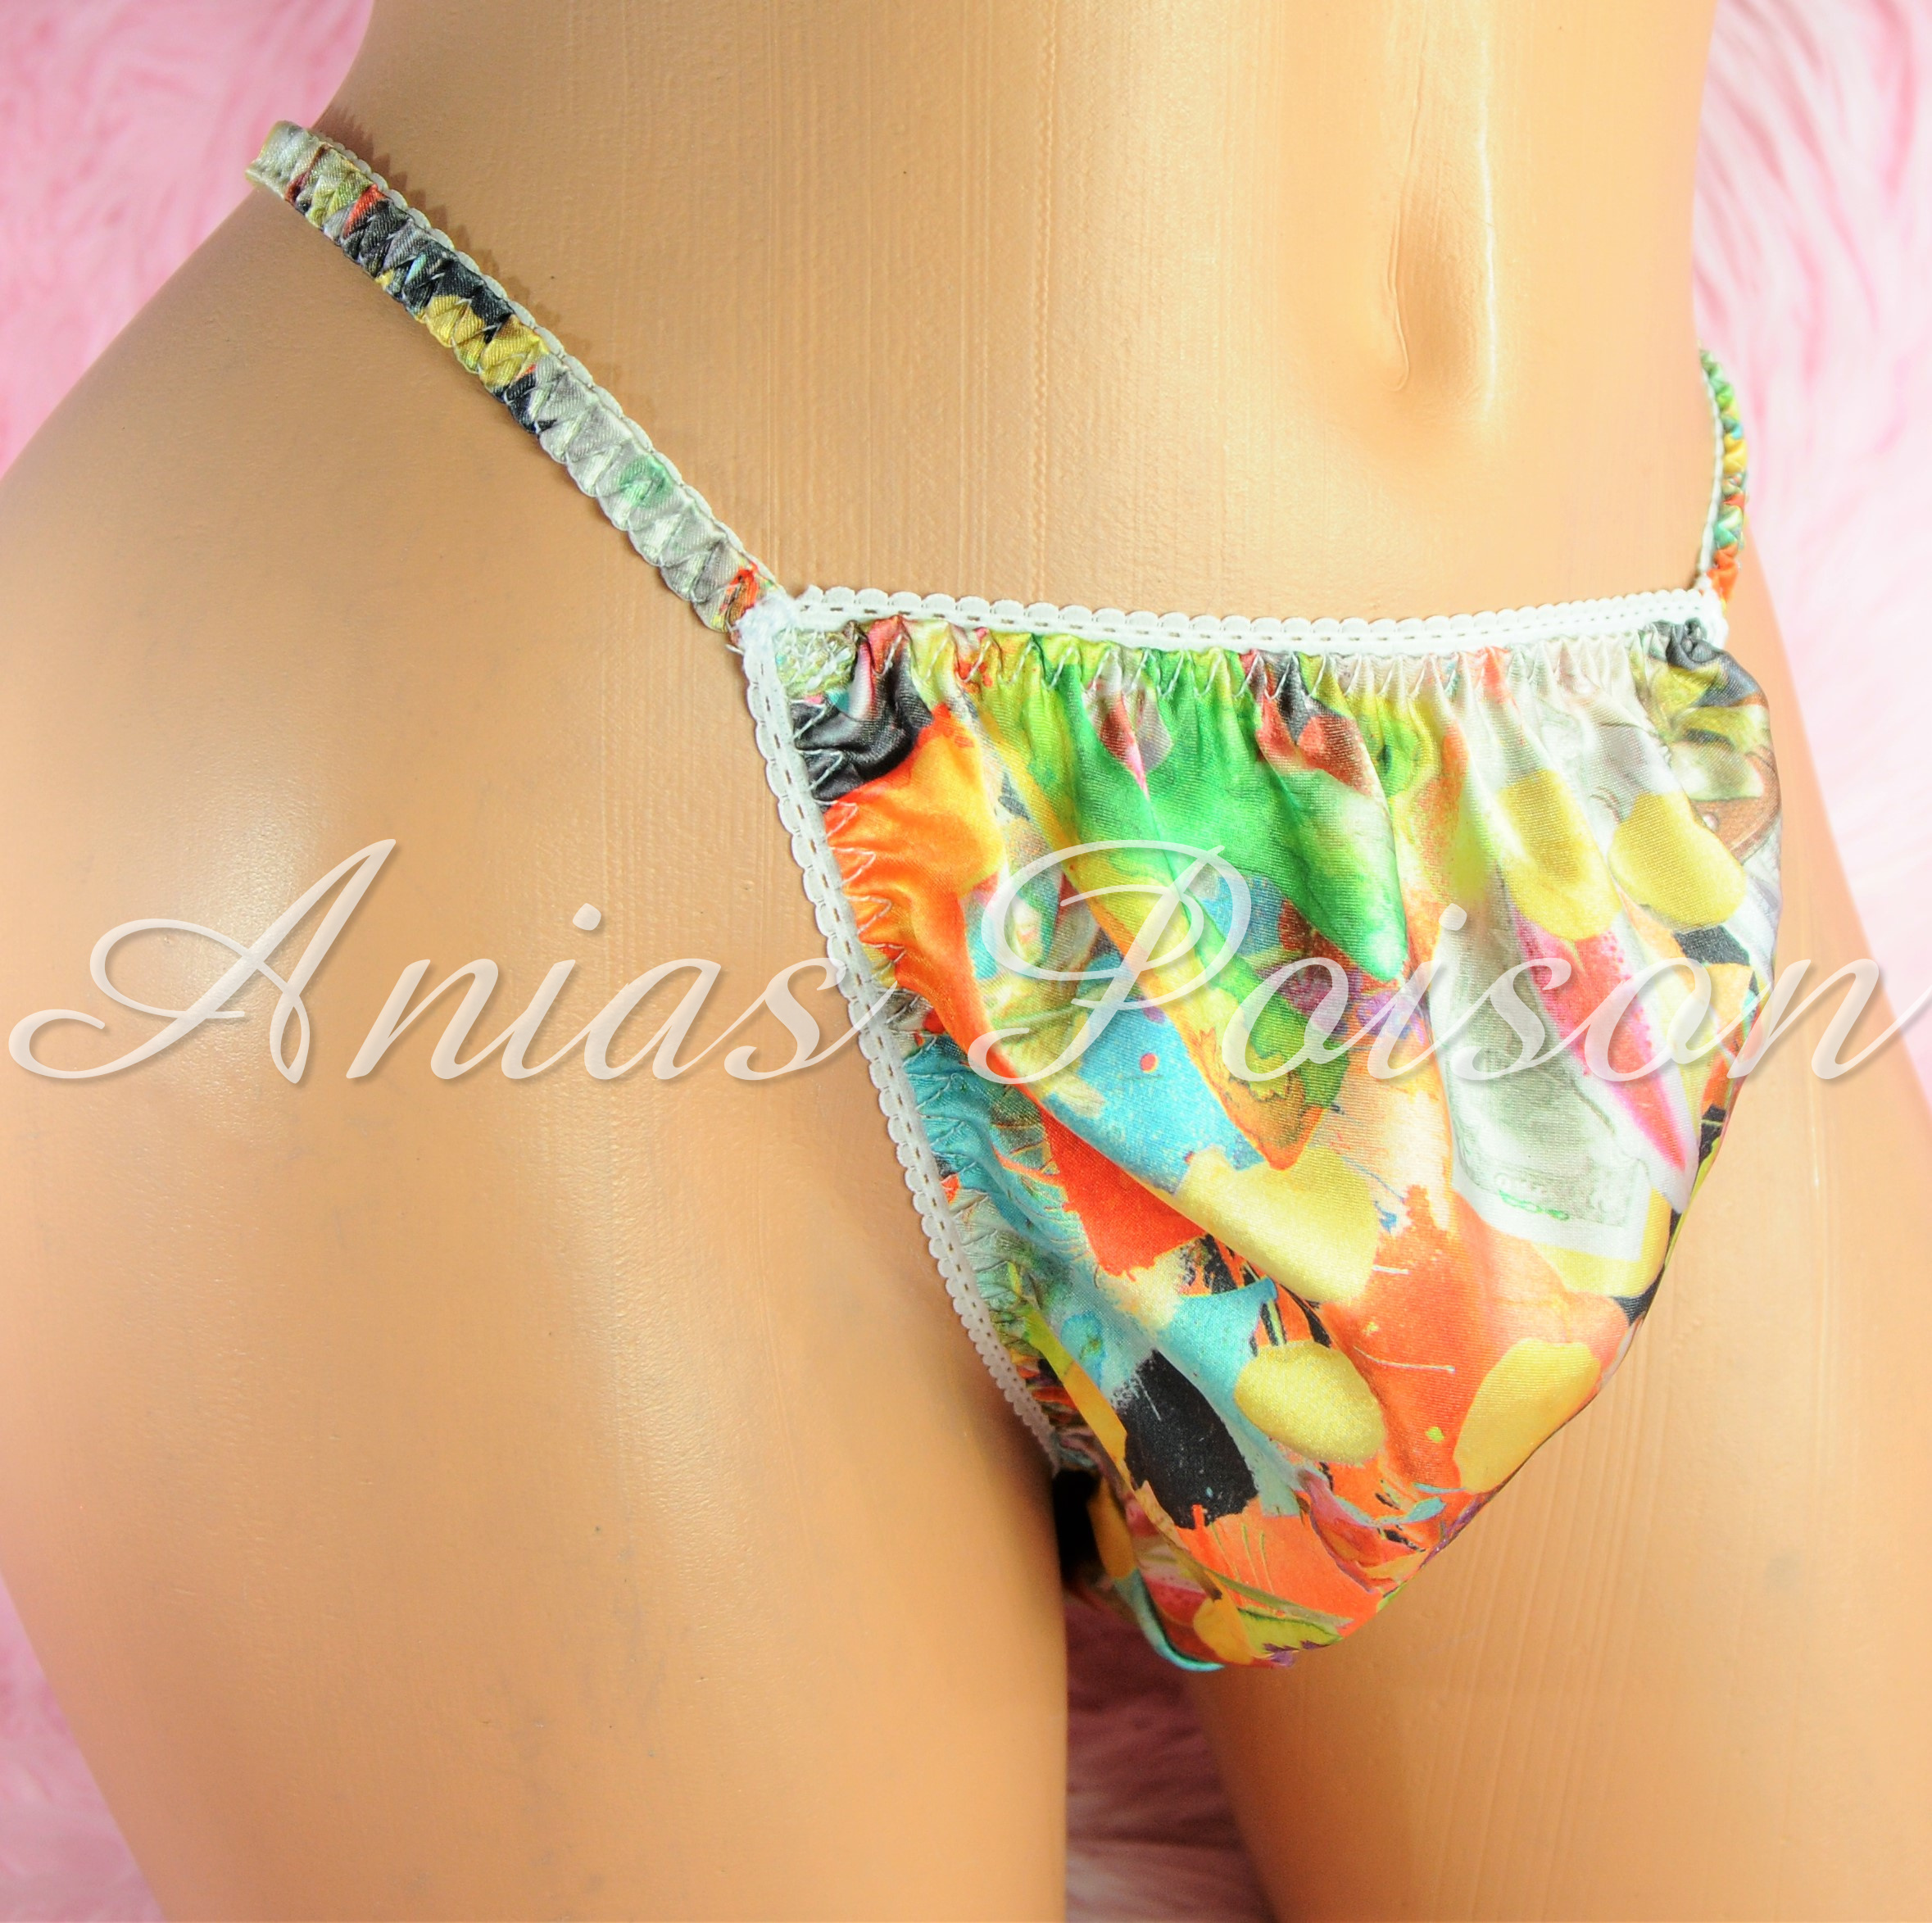 Sissy Mens Panties Satin Floral Hawaiian print string bikini panties S - XXL